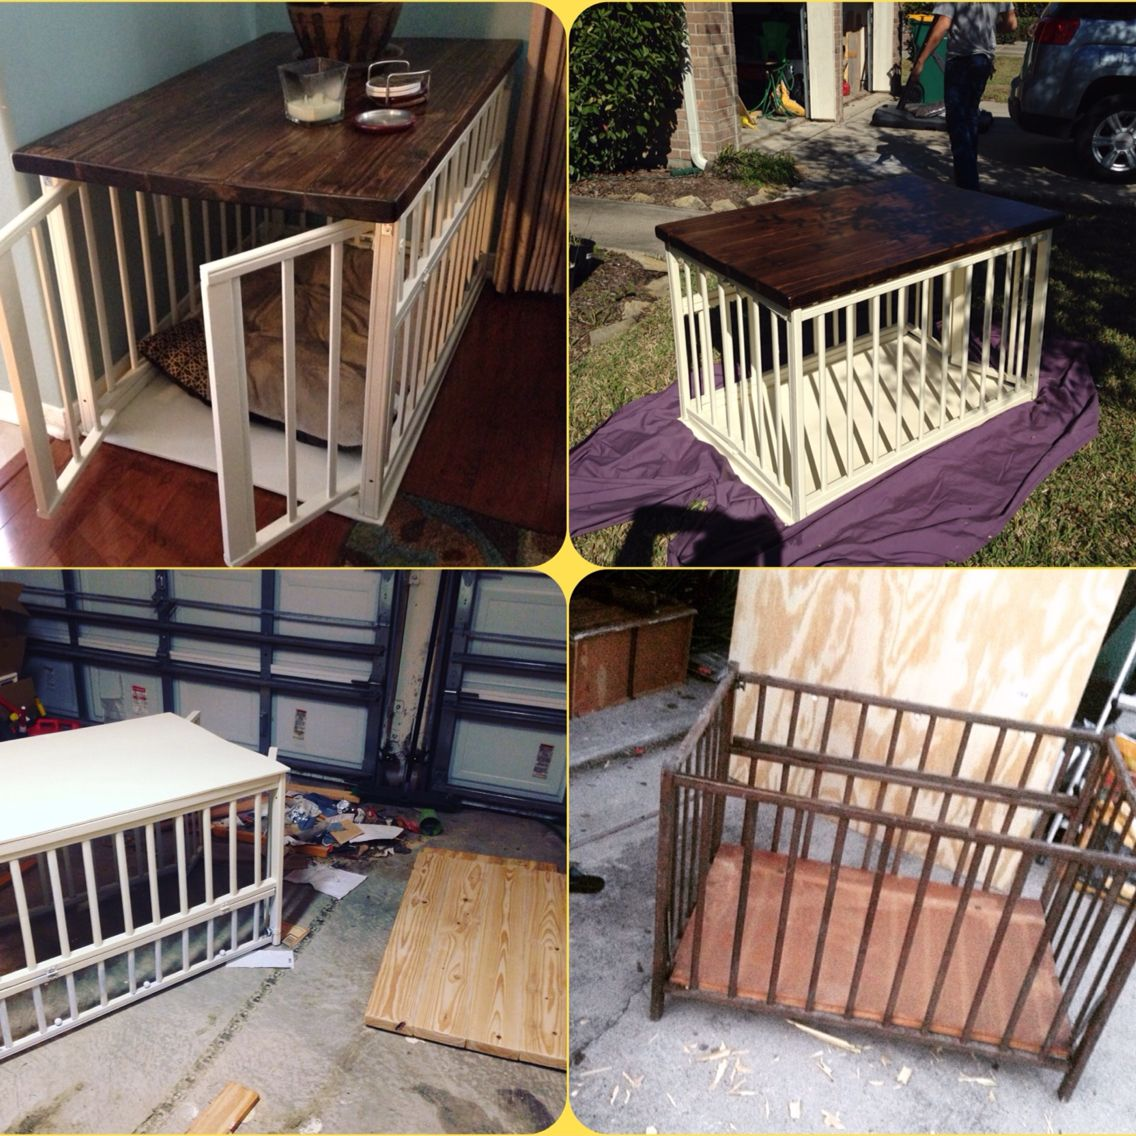 Build Solid Durable Diy Dog Kennel Through These Ways Trend Crafts Diy Dog Kennel Diy Dog Crate Dog Crate Furniture